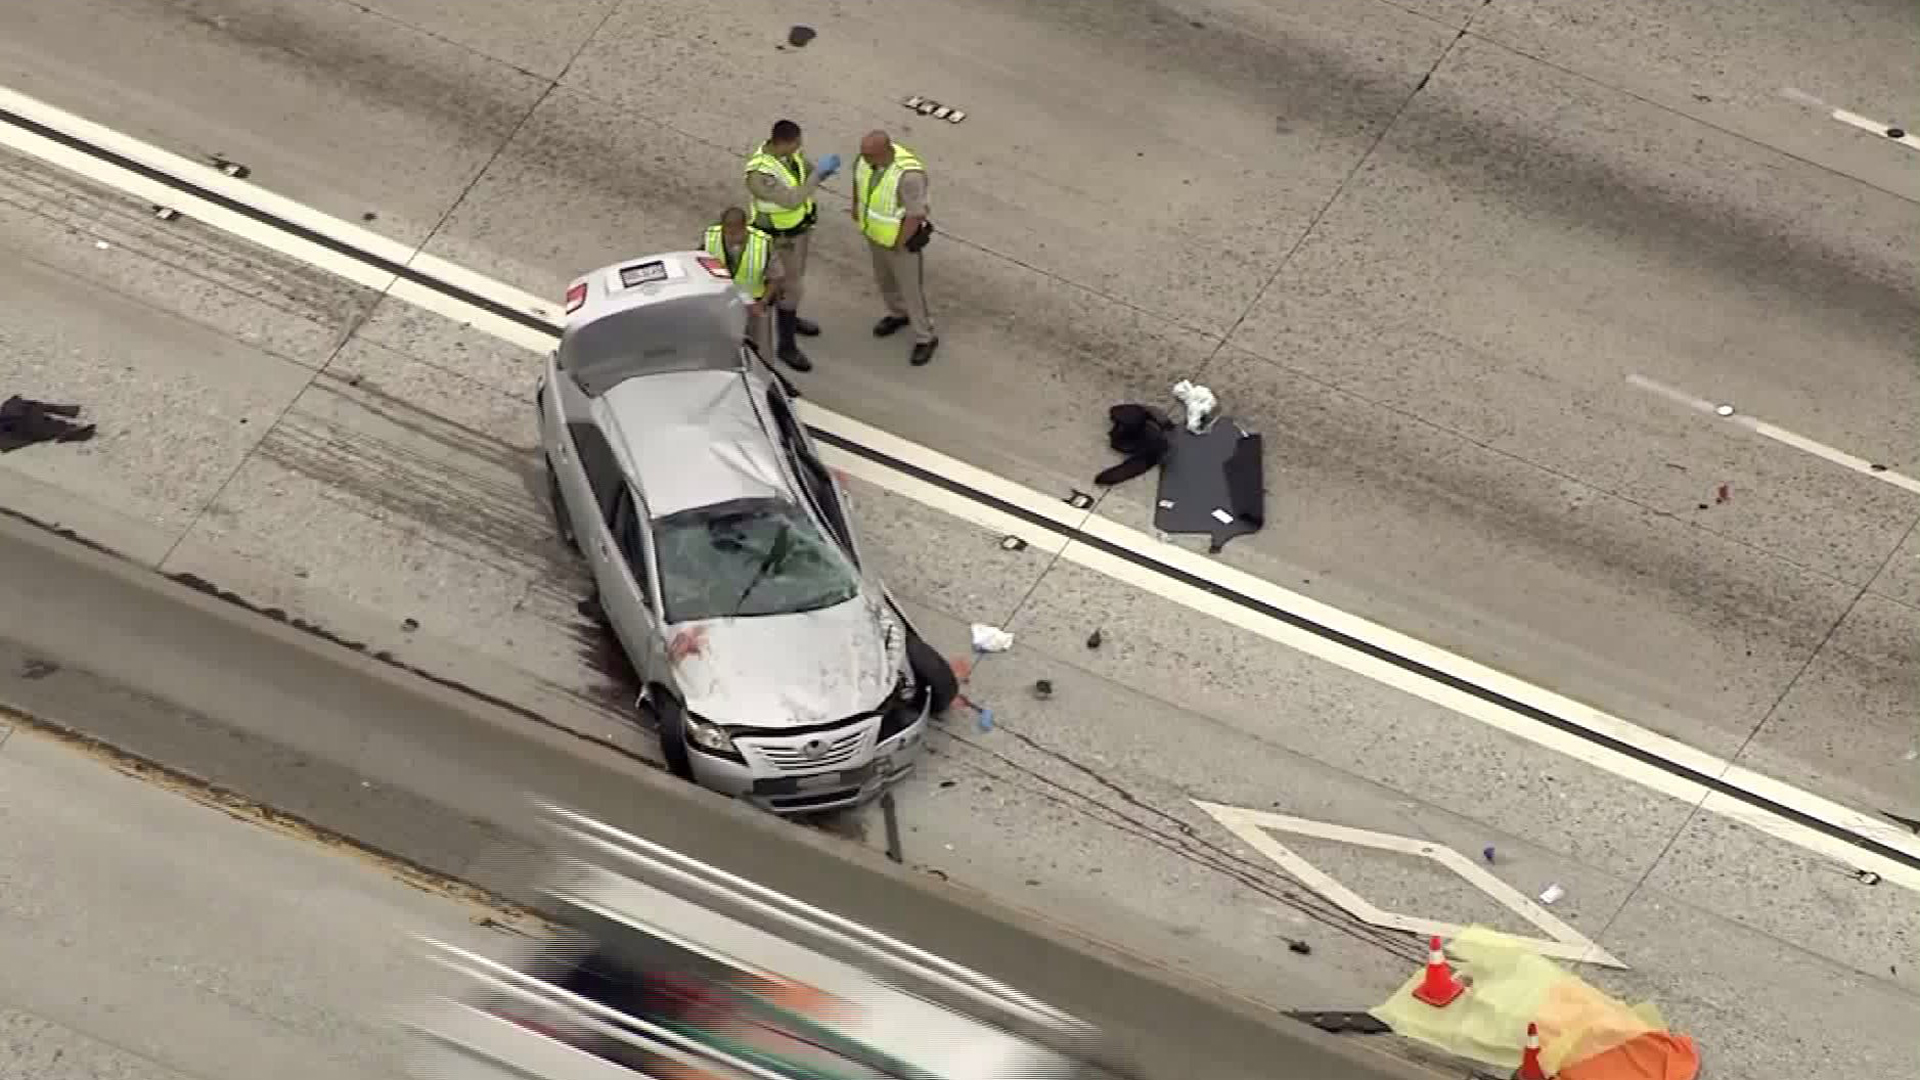 CHP officers inspect the scene of a fatal crash along the 605 Freeway in Norwalk where a Monterey Park police officer was killed on Aug. 14, 2017. (Credit: KTLA)